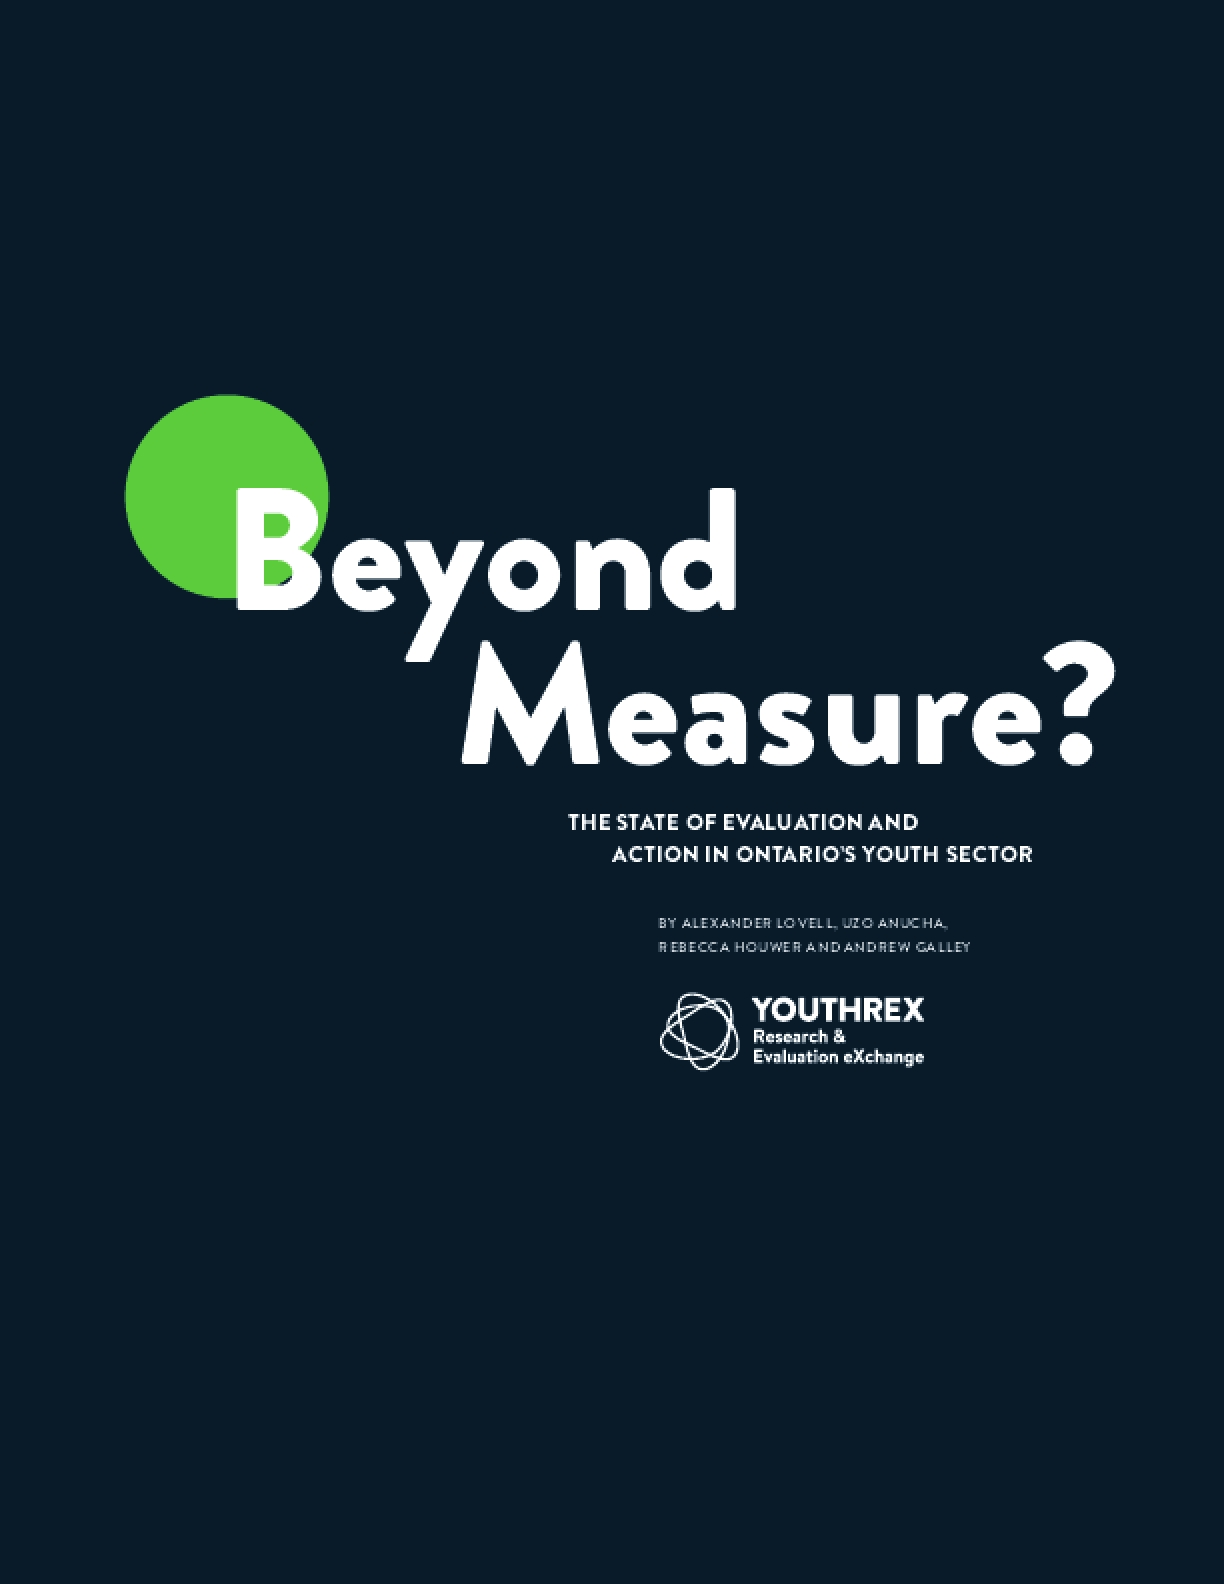 Beyond Measure? The State of Evaluation and Action in Ontario's Youth Sector